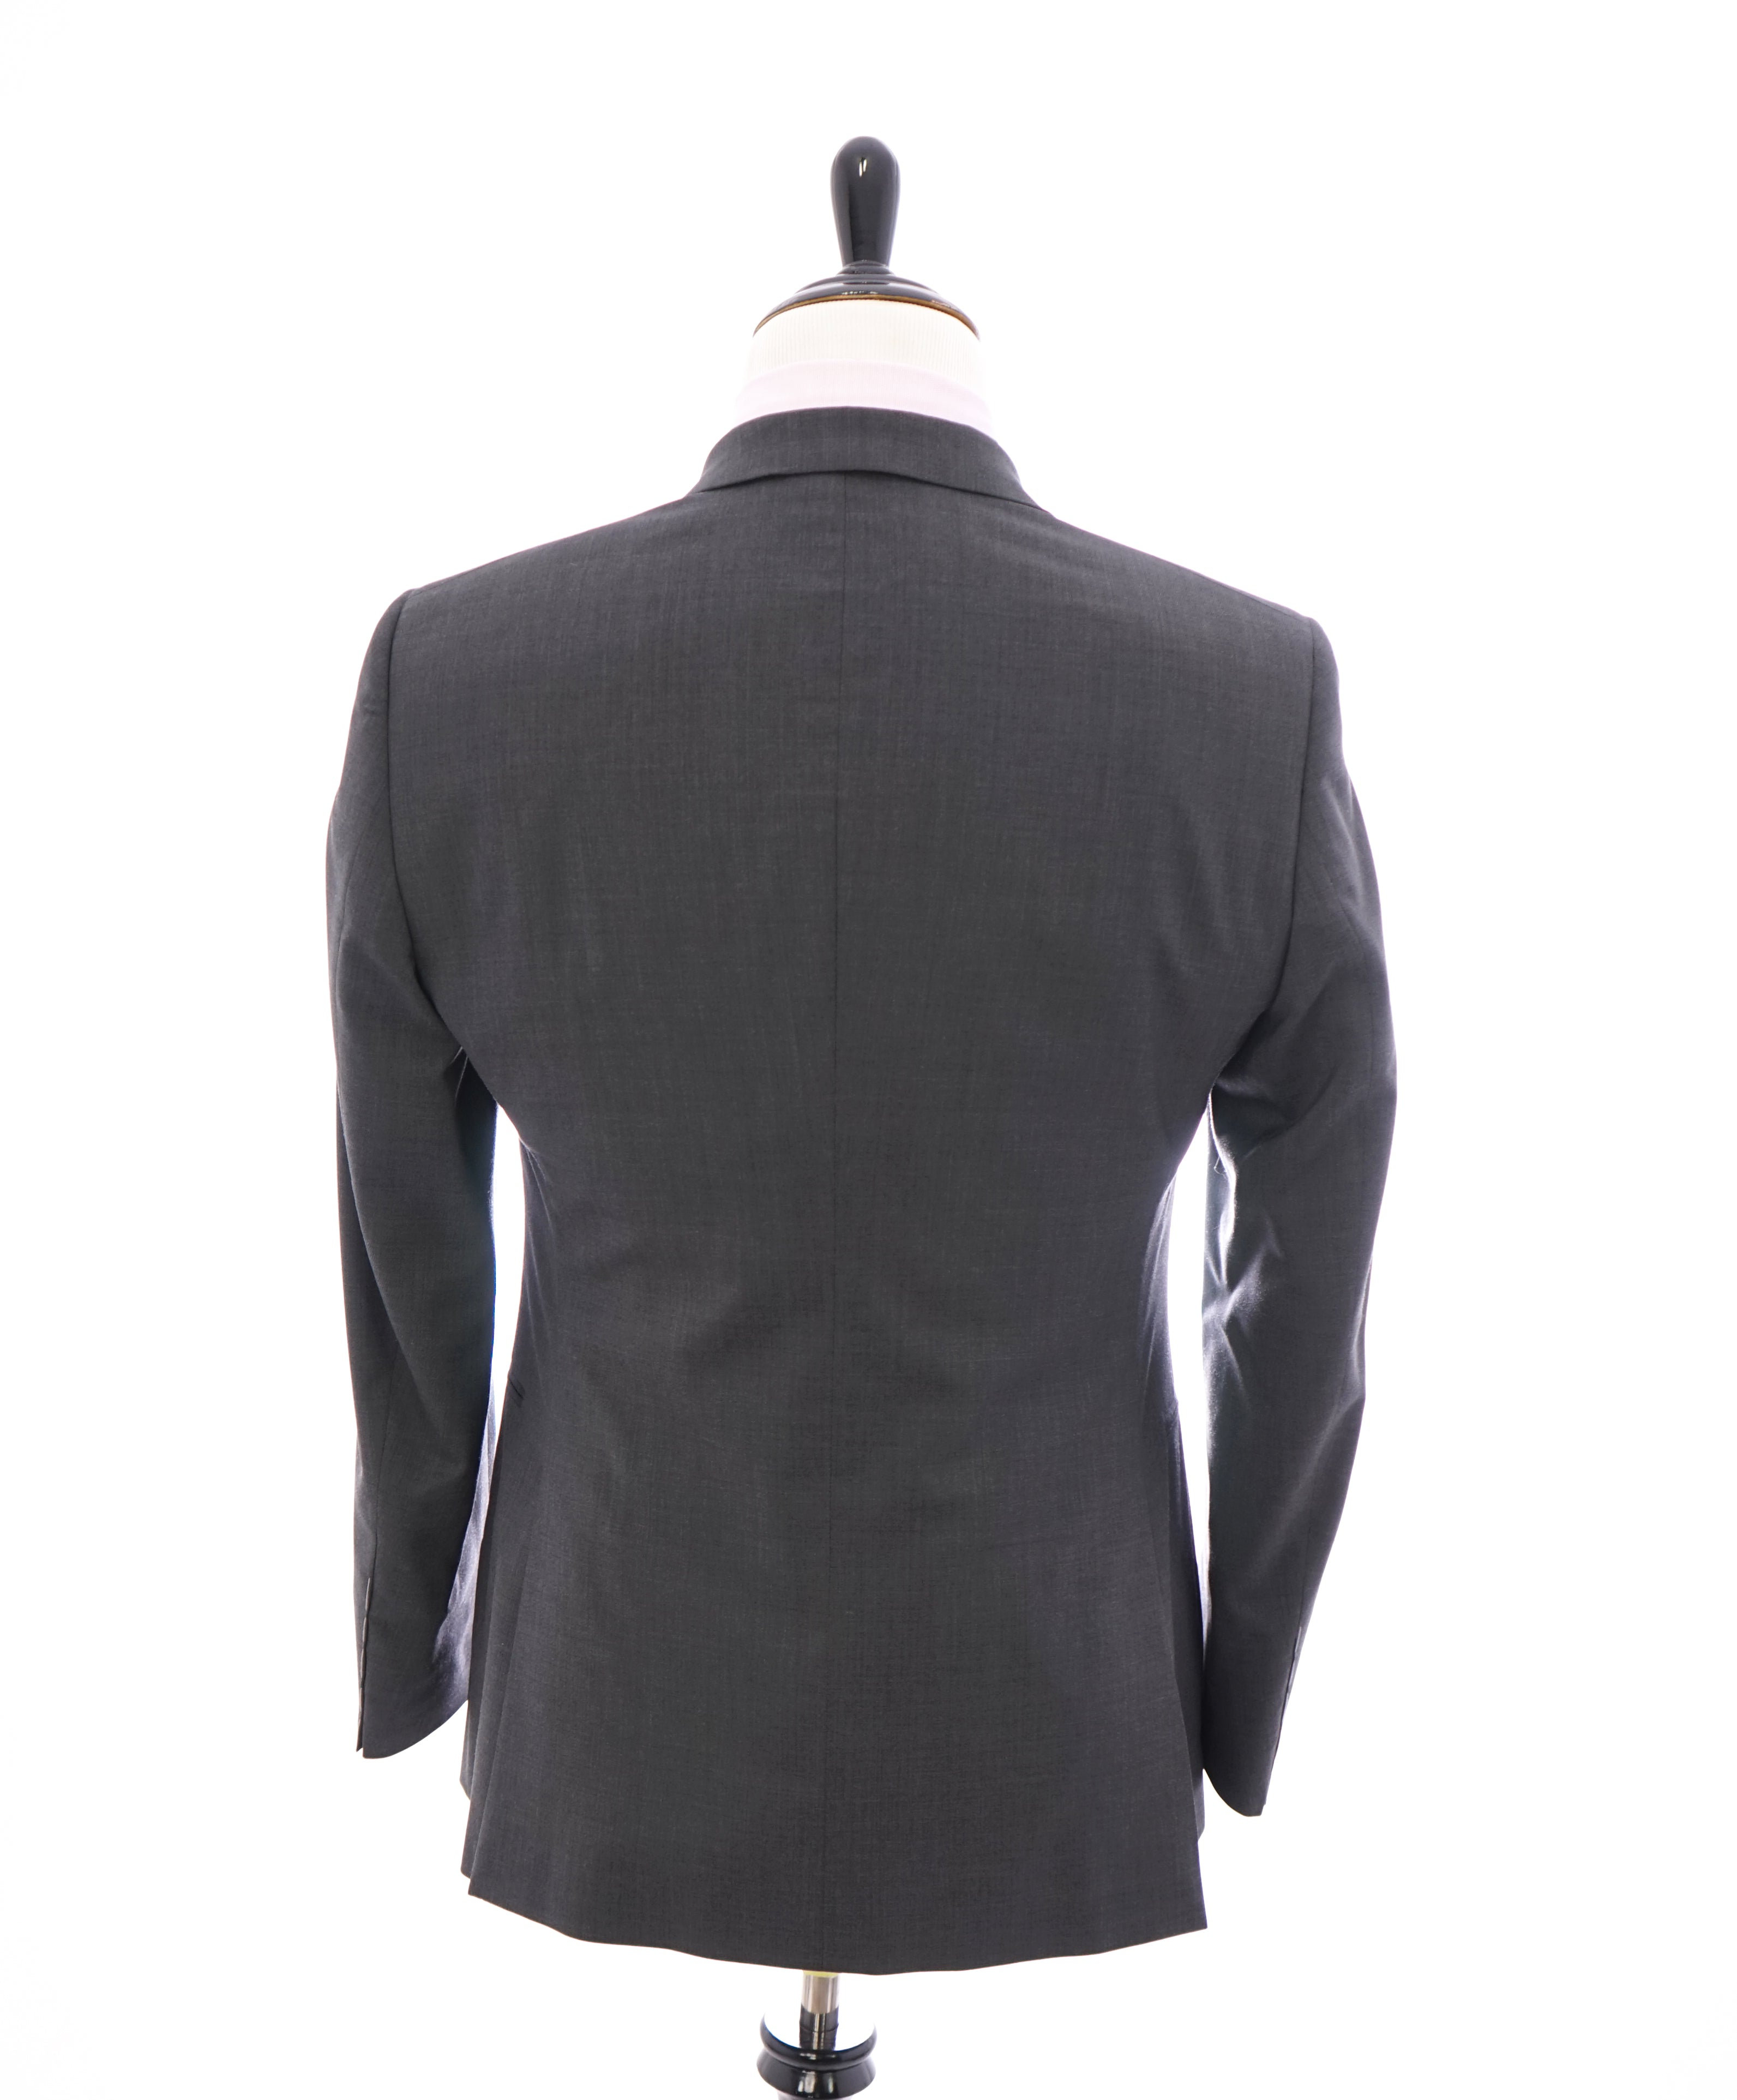 "GIORGIO ARMANI - Soft Gray 2-Button Super 150's ""TAYLOR"" Collection Suit - 38R"